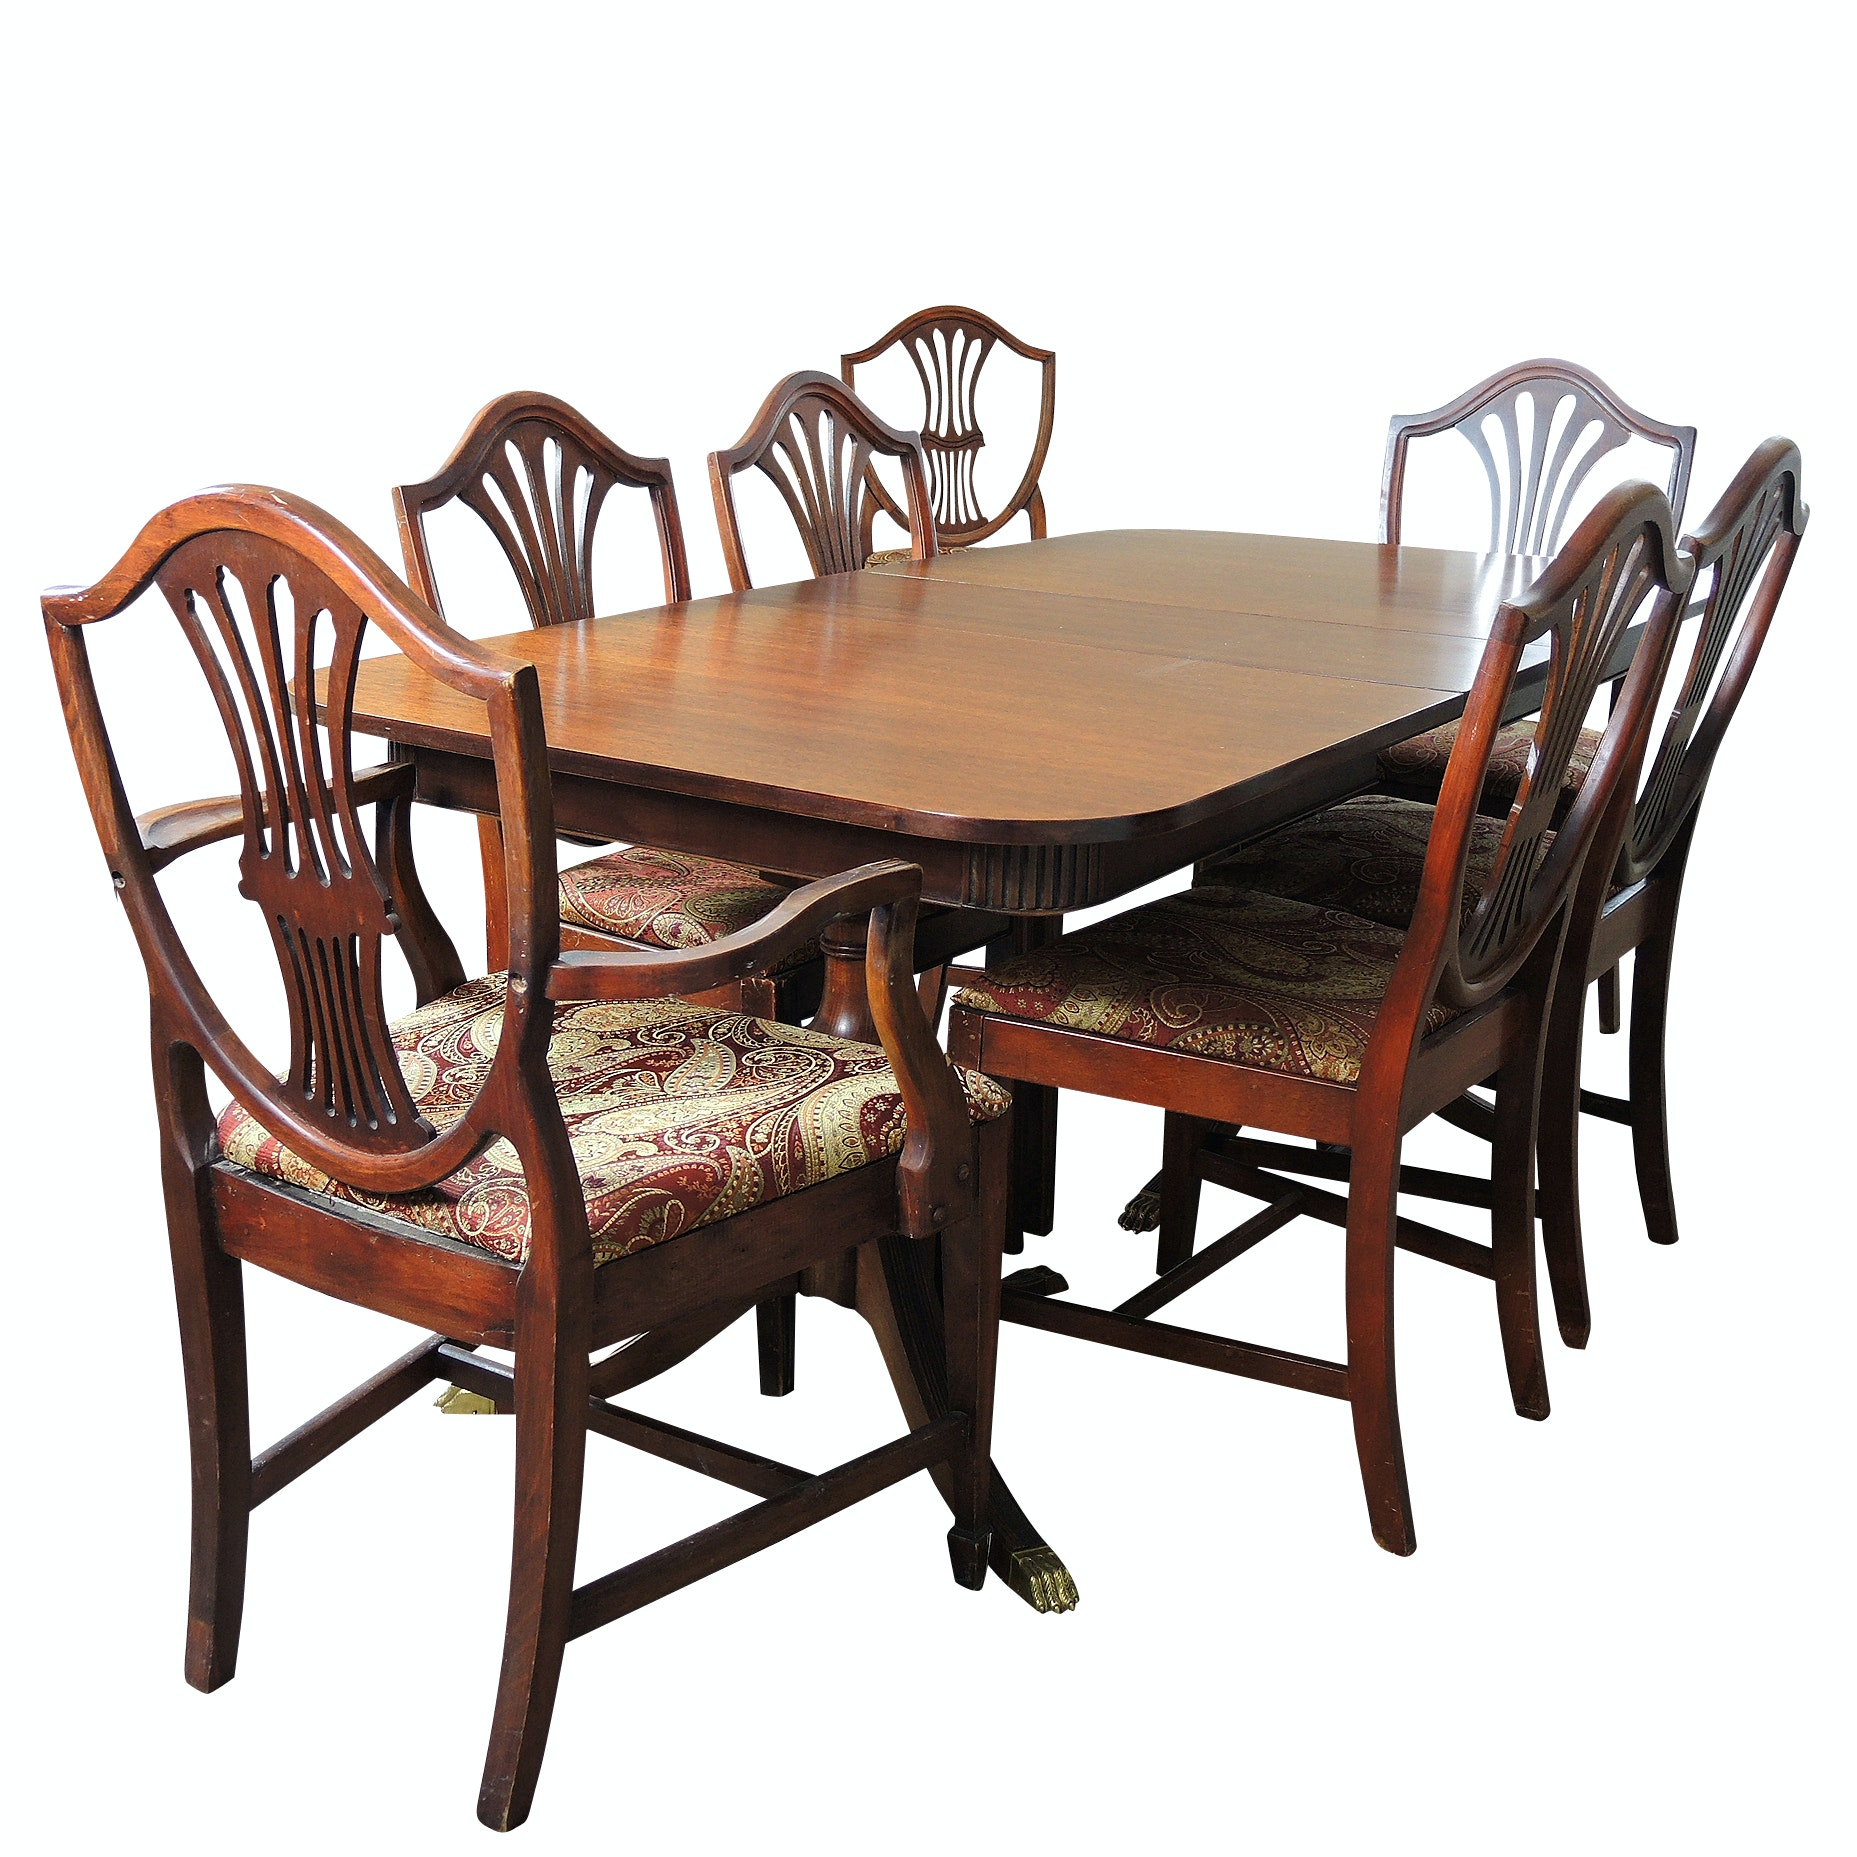 Vintage Mahogany Dining Table and Seven Chairs